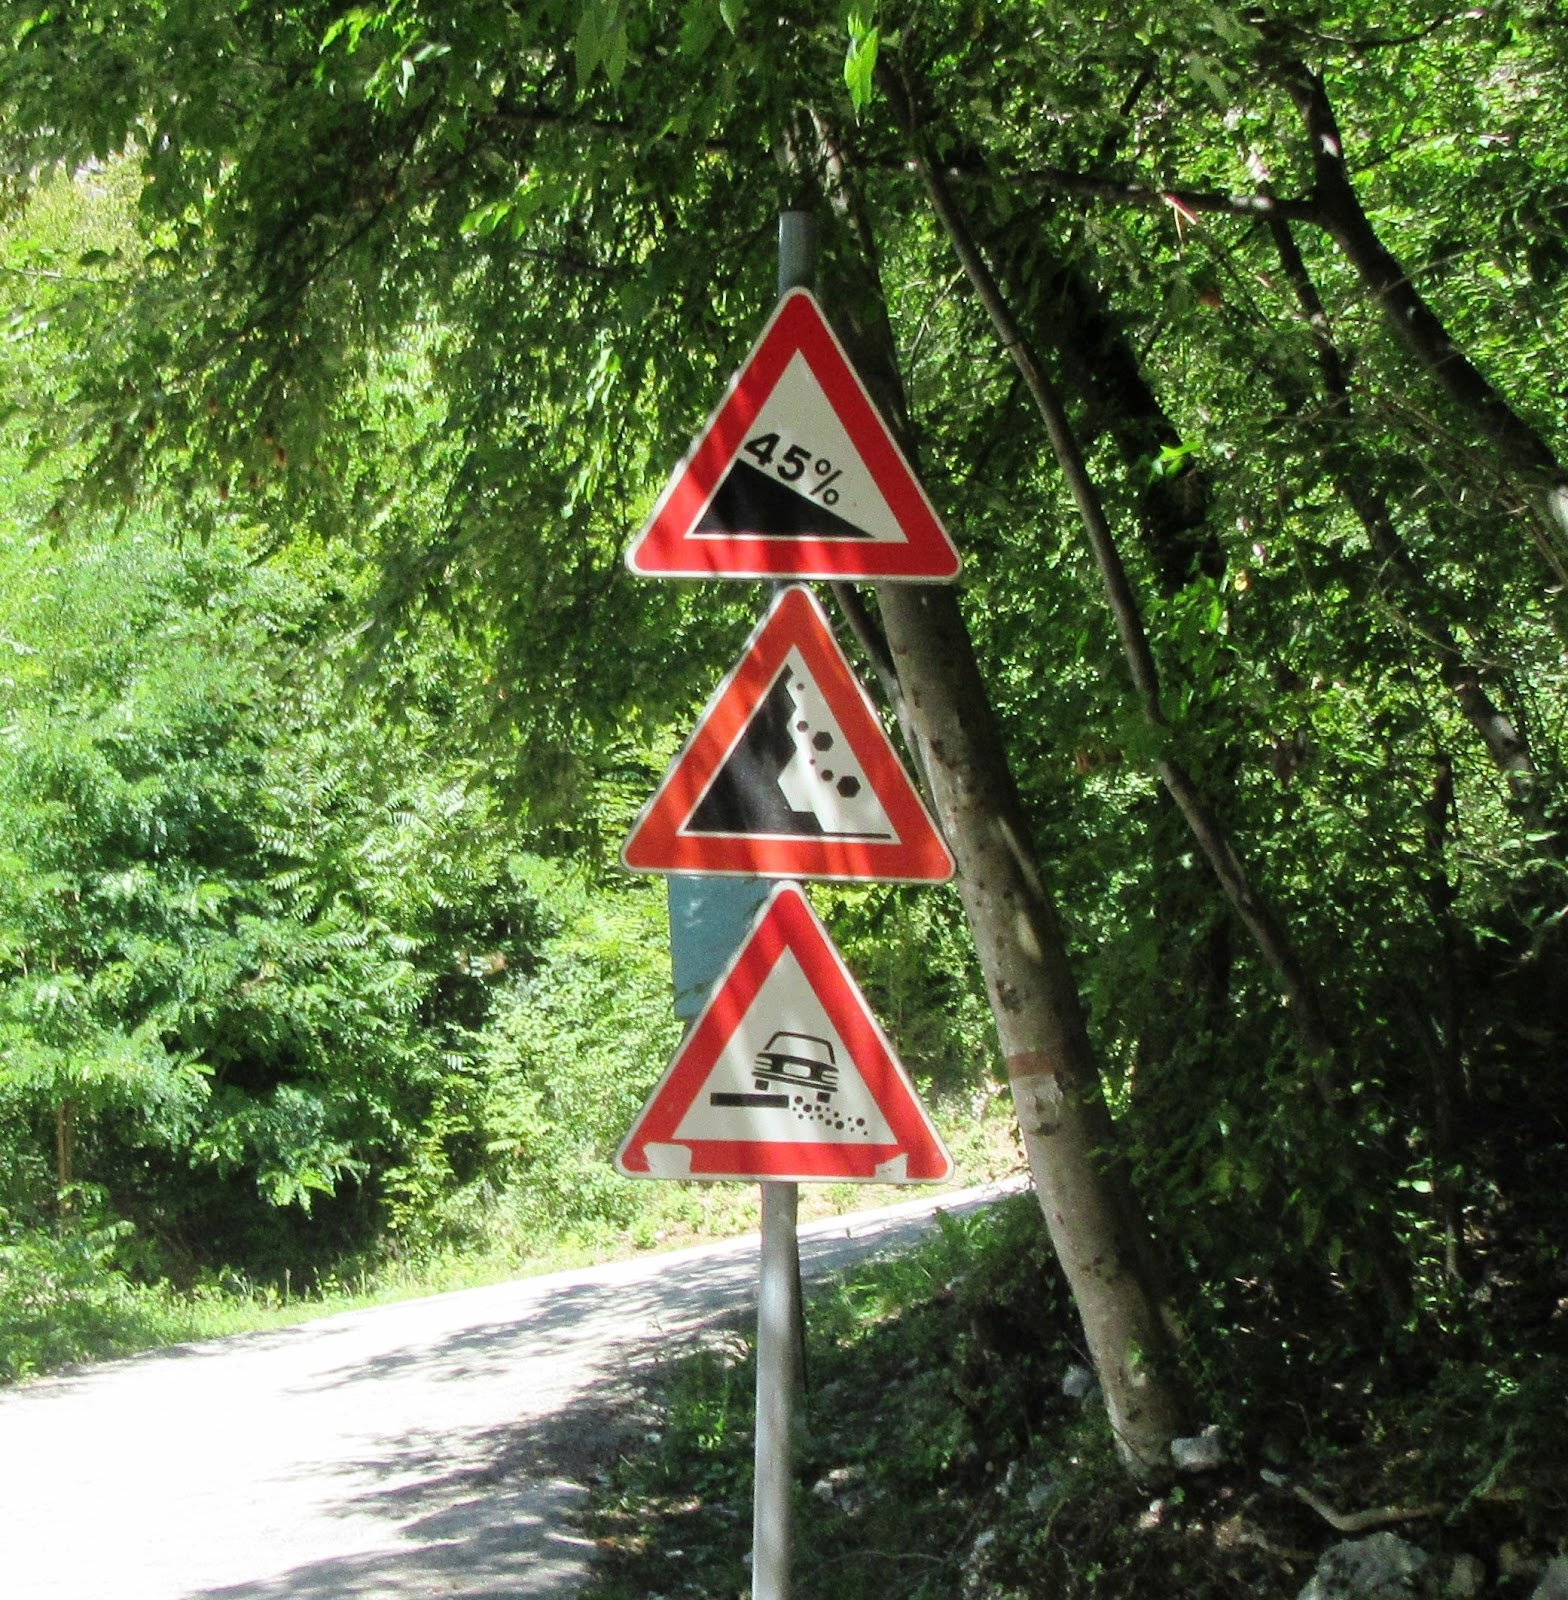 Cycling Scanuppia, Italy - 45% gradient sign